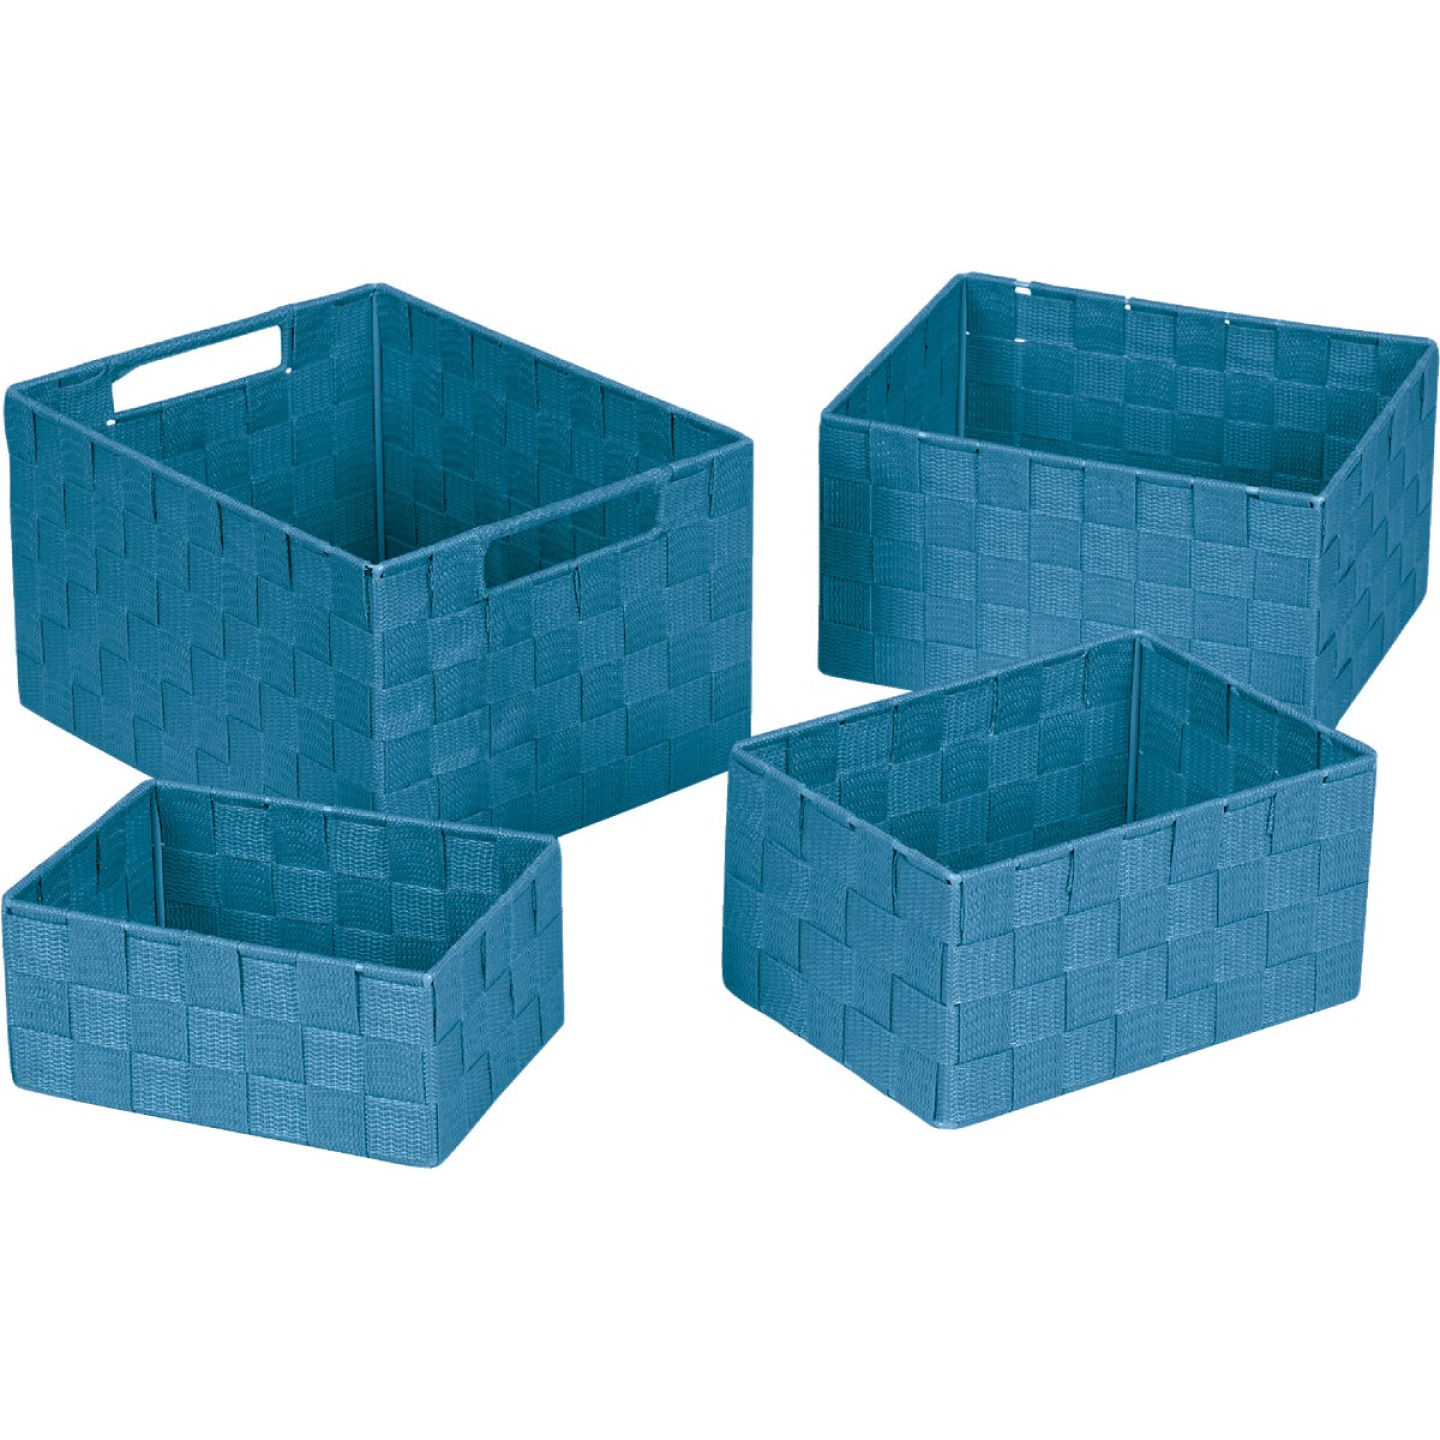 Home Impressions 4-Piece Woven Storage Basket Set, Blue Image 1